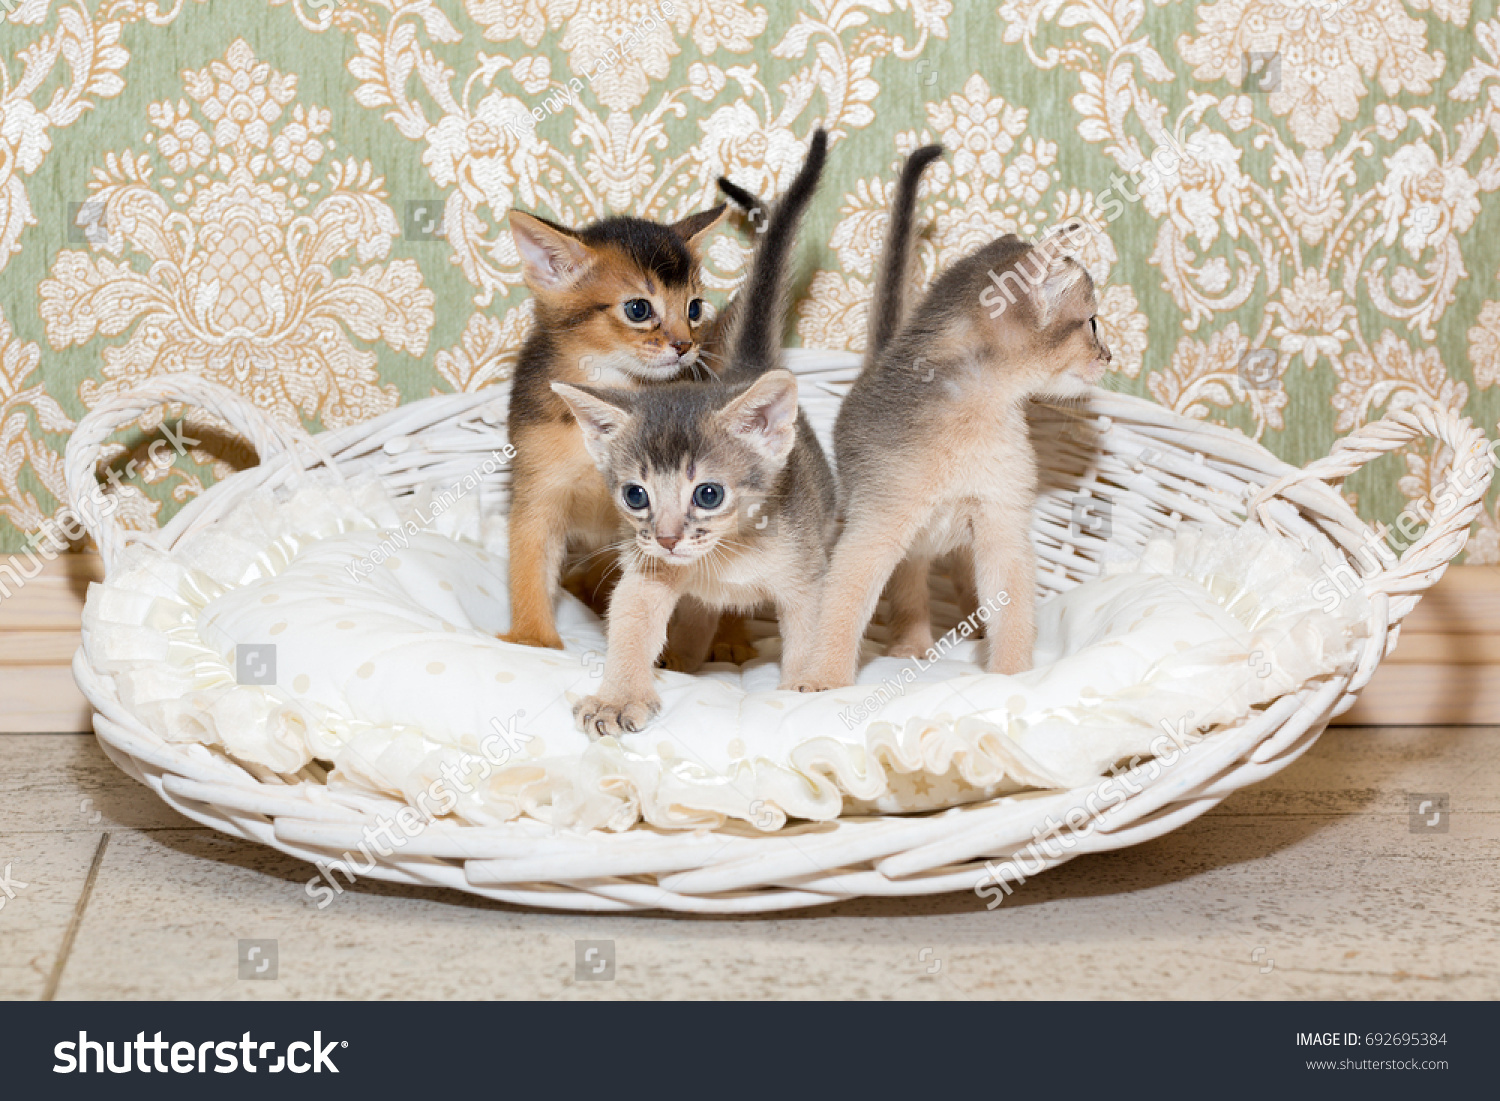 Cute Kittens Little Purebred Abyssinian Kittens Stock Photo ...